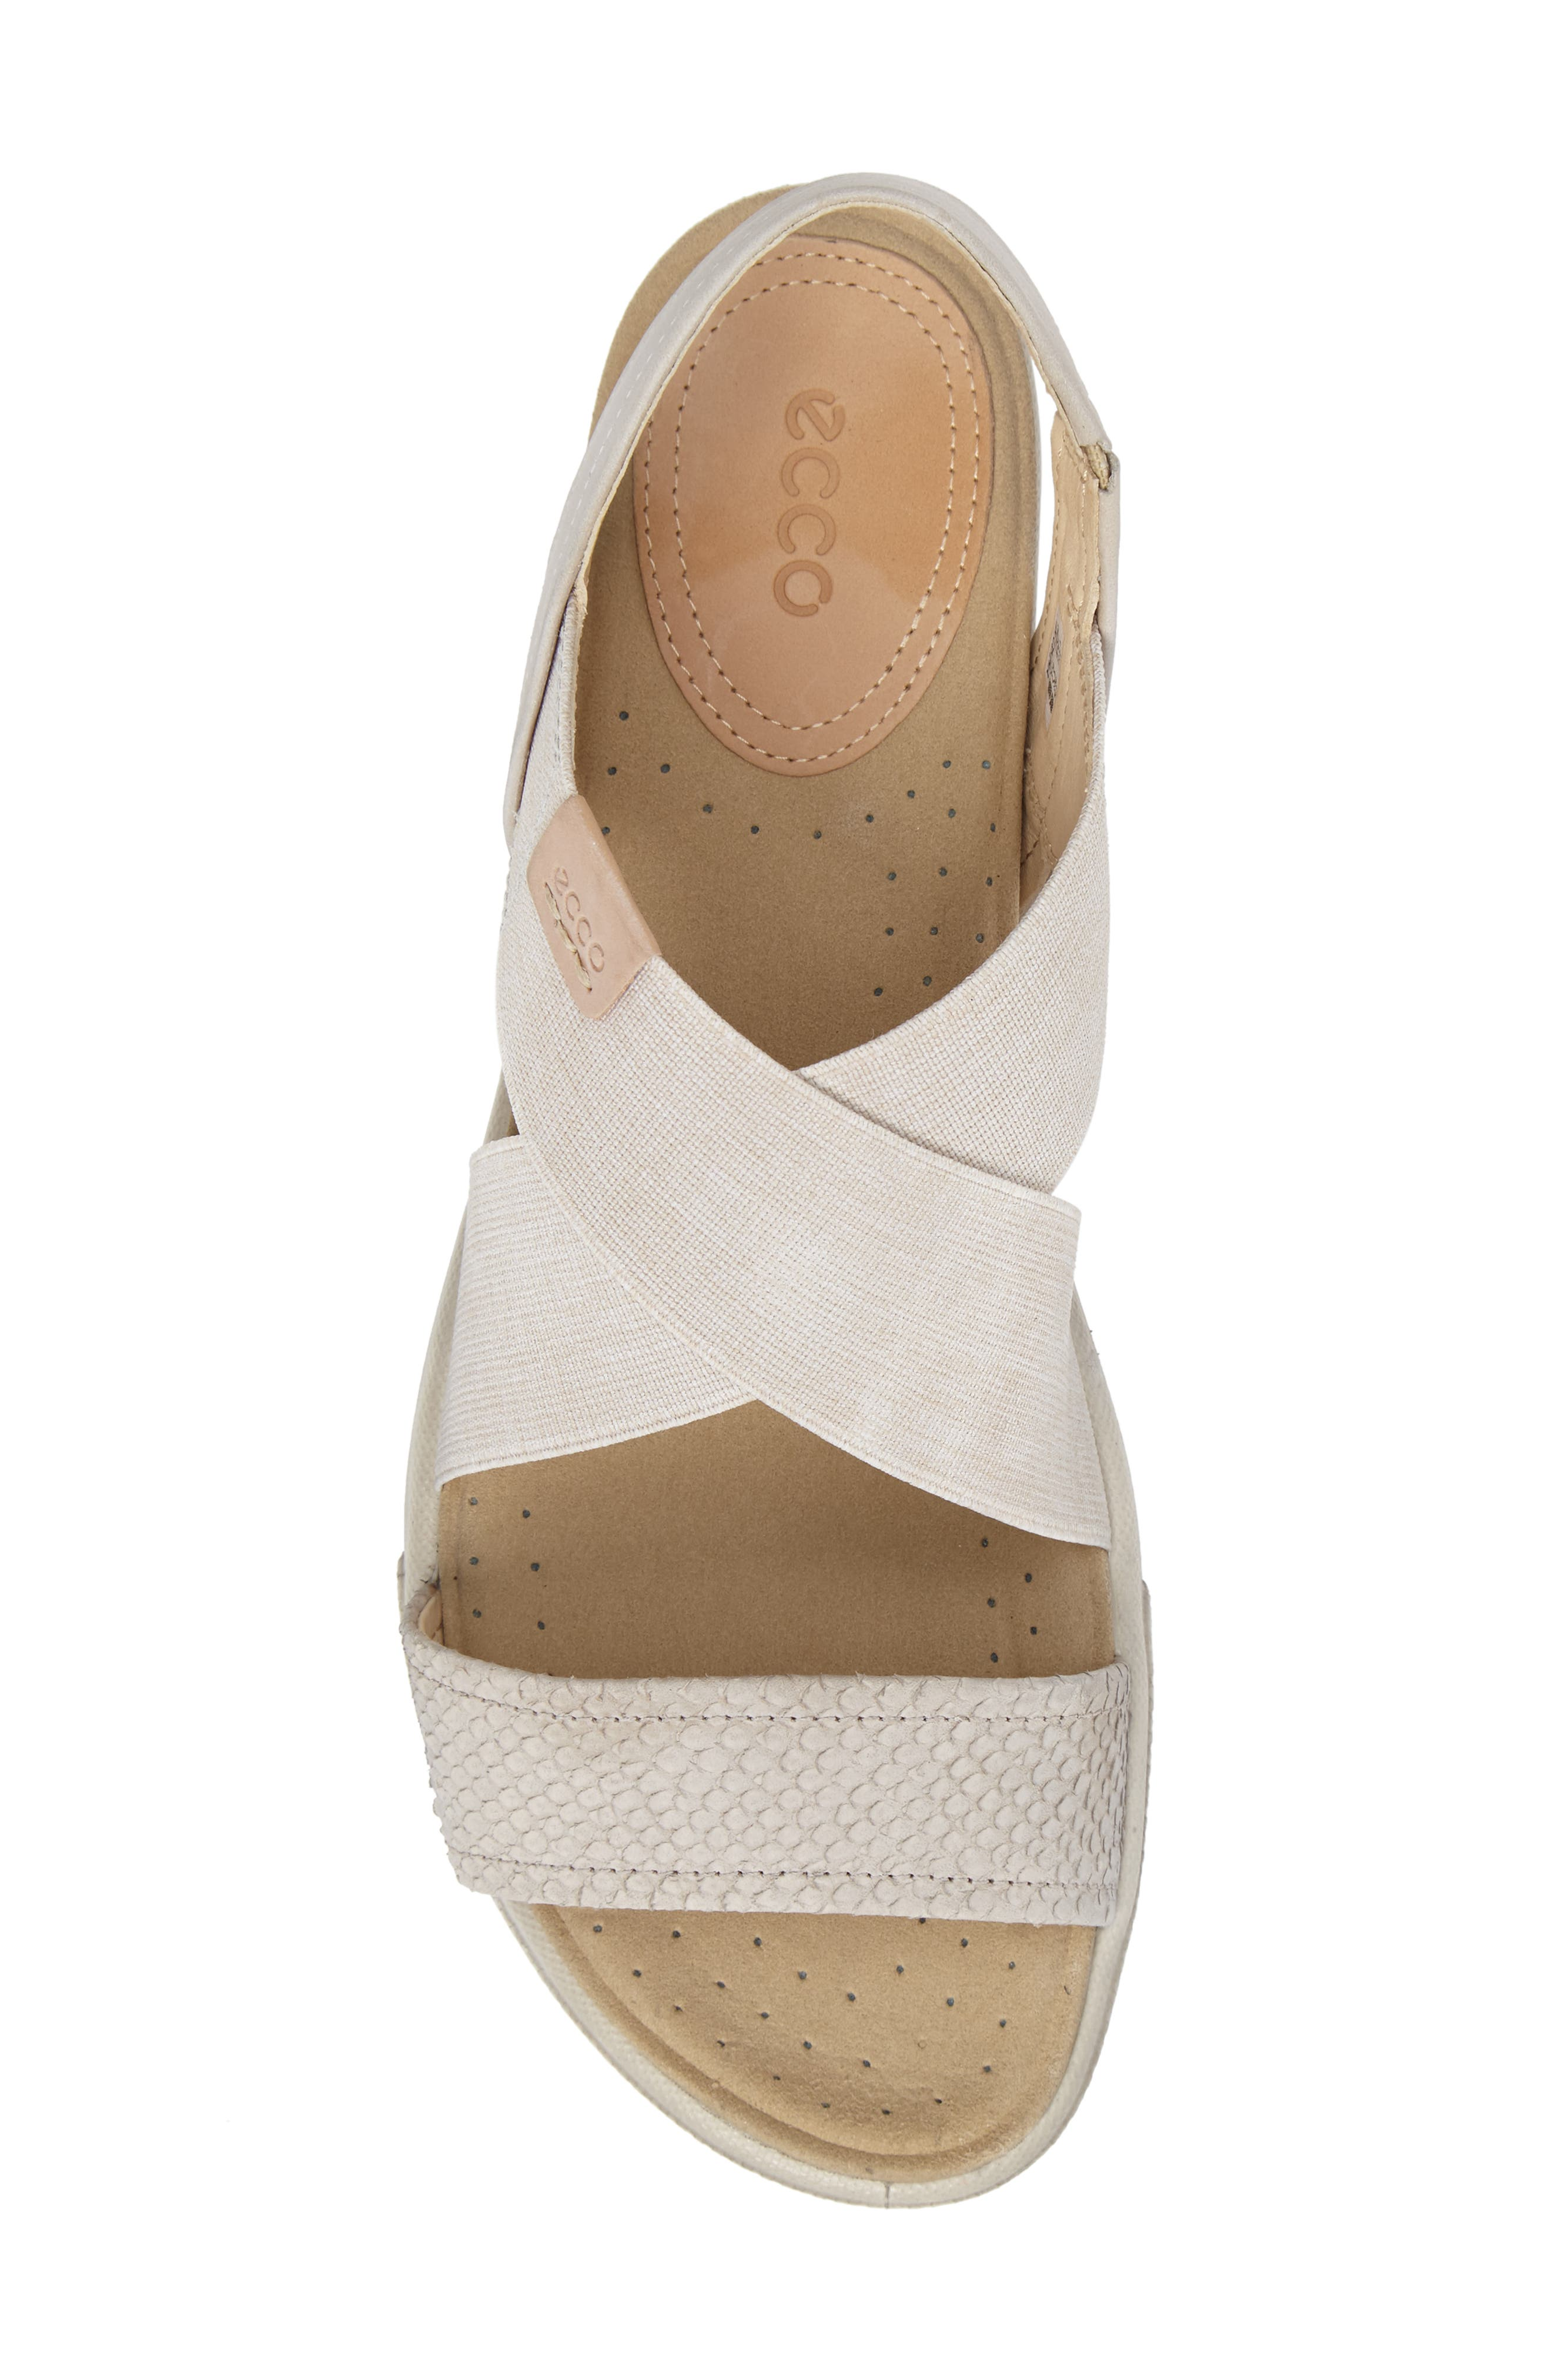 Damara Cross-Strap Sandal,                             Alternate thumbnail 35, color,